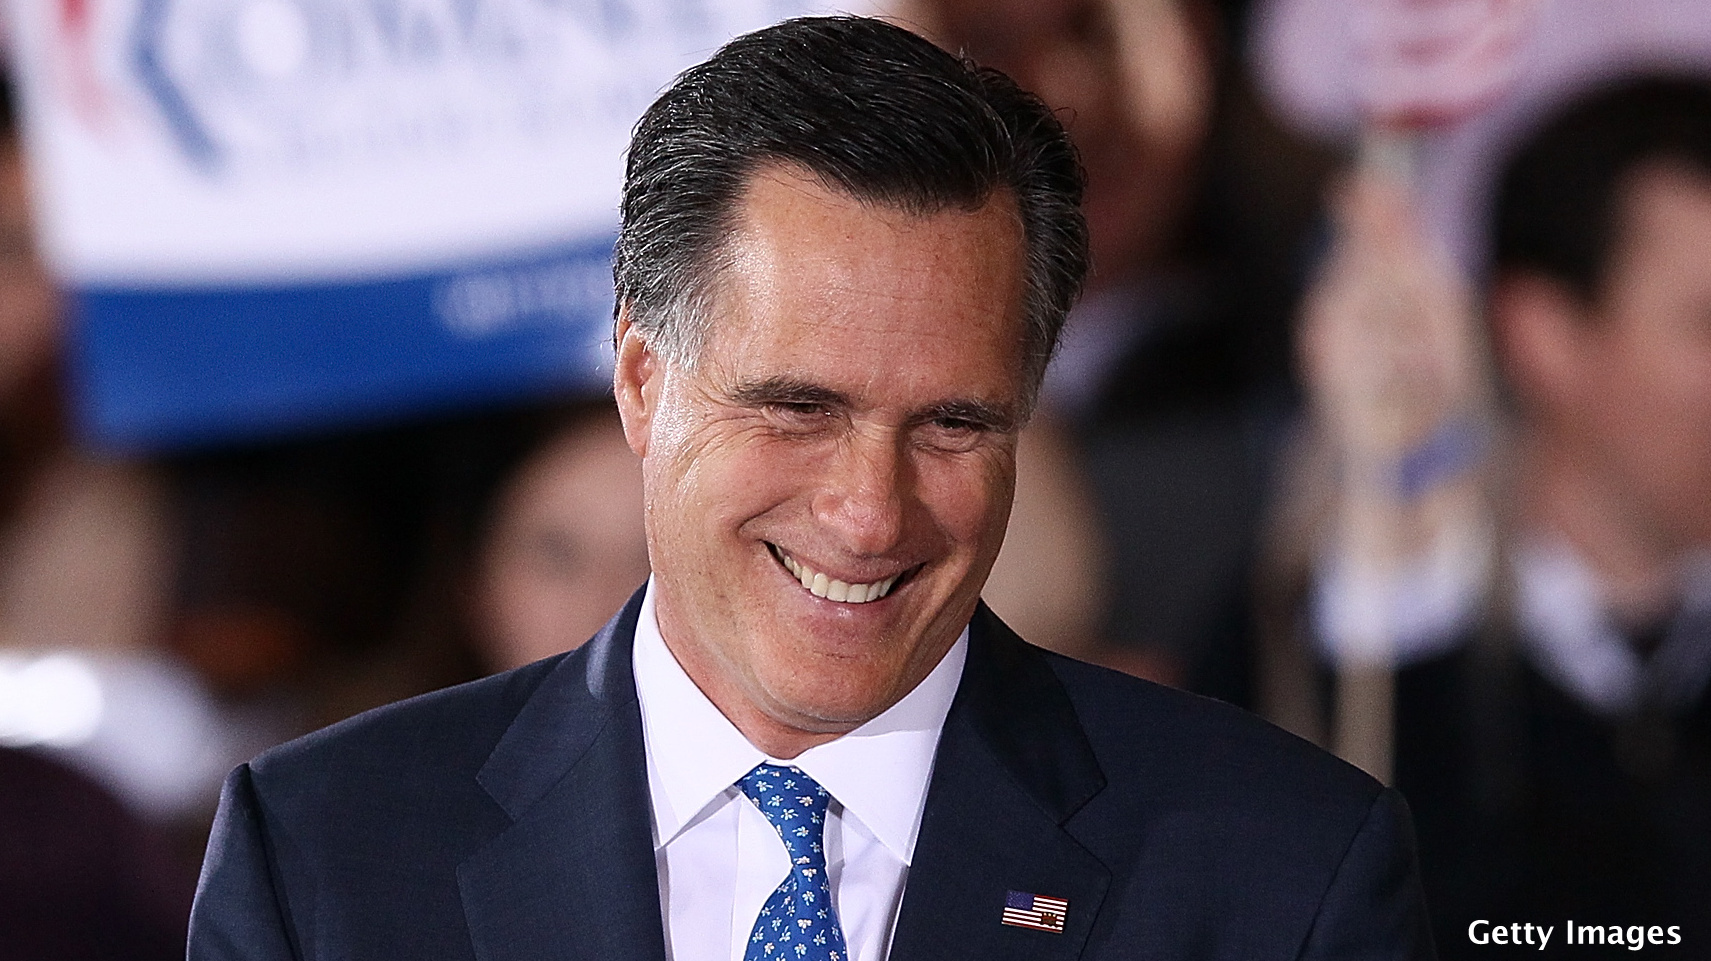 BREAKING: Mitt Romney wins the Illinois primary, CNN projects